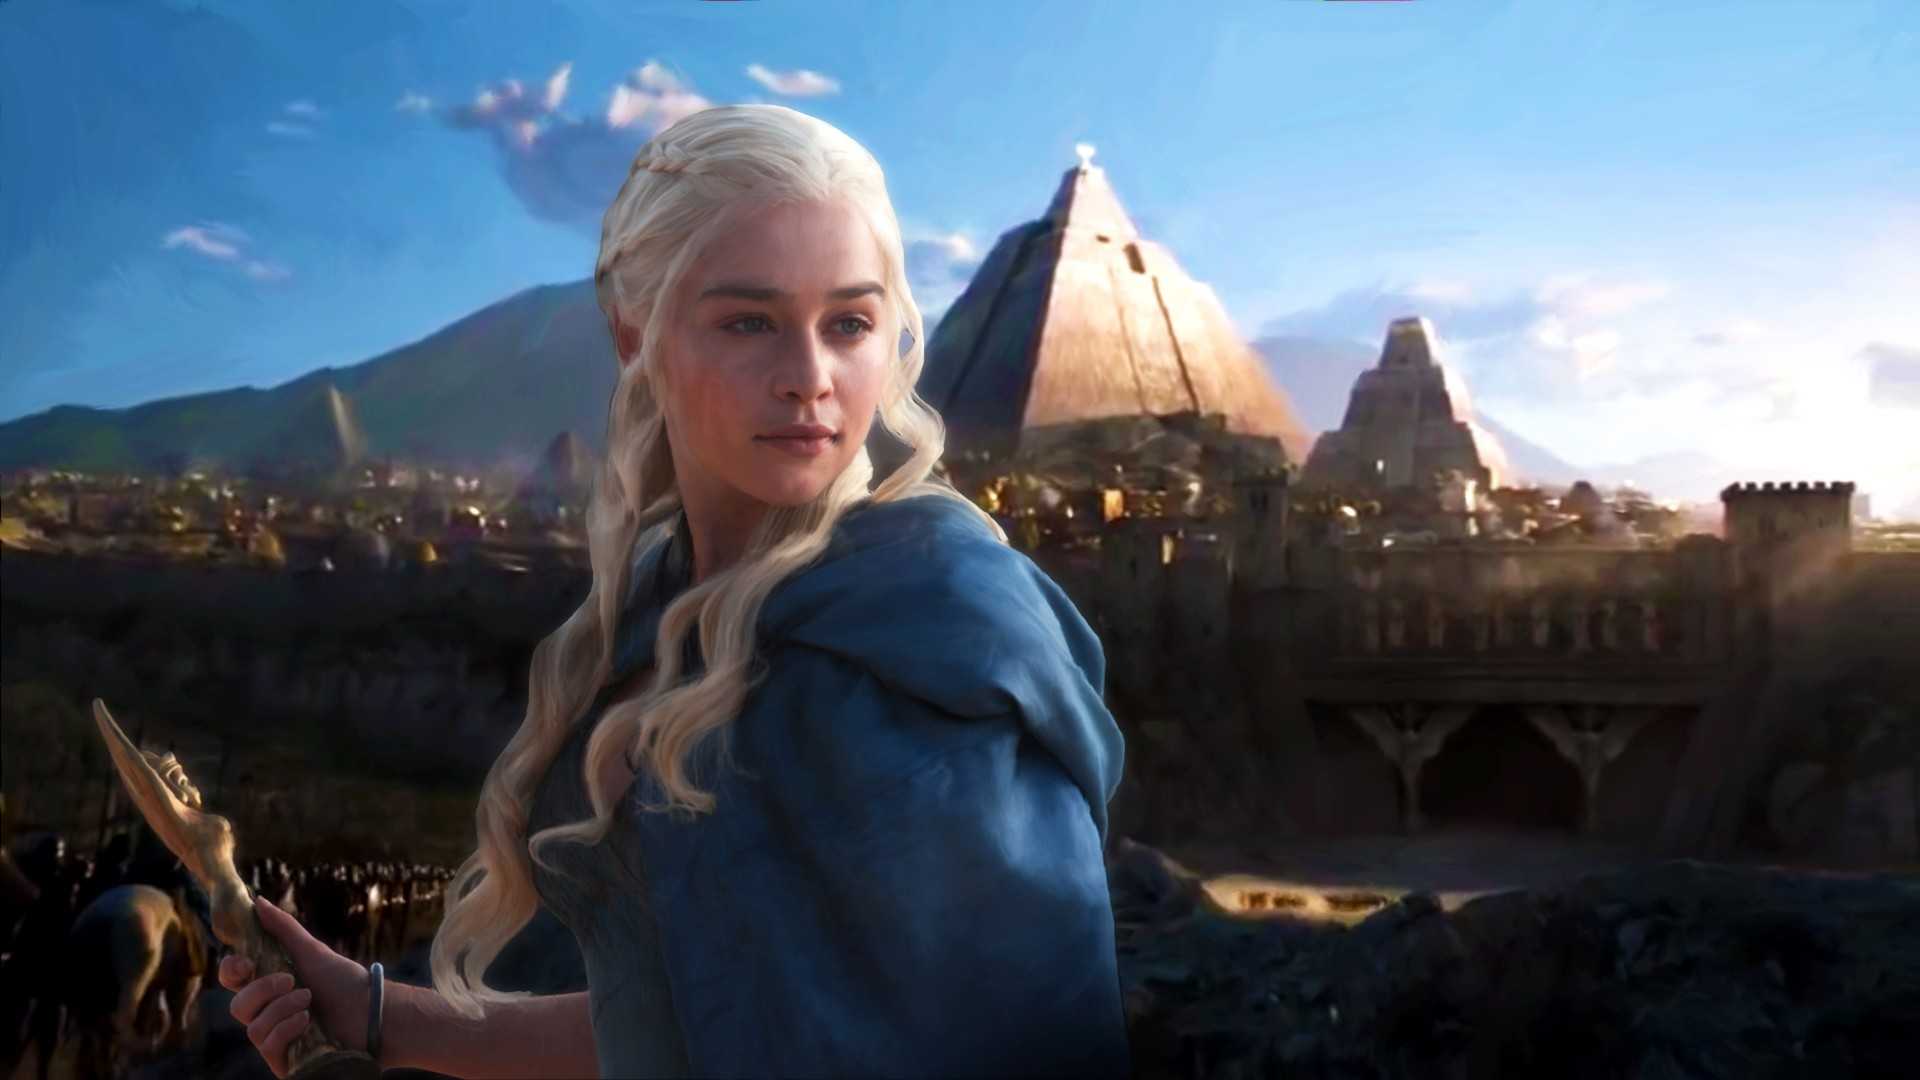 Marvel Iphone Wallpaper Daenerys Targaryen Season 5 Wallpapers Hd Wallpapers